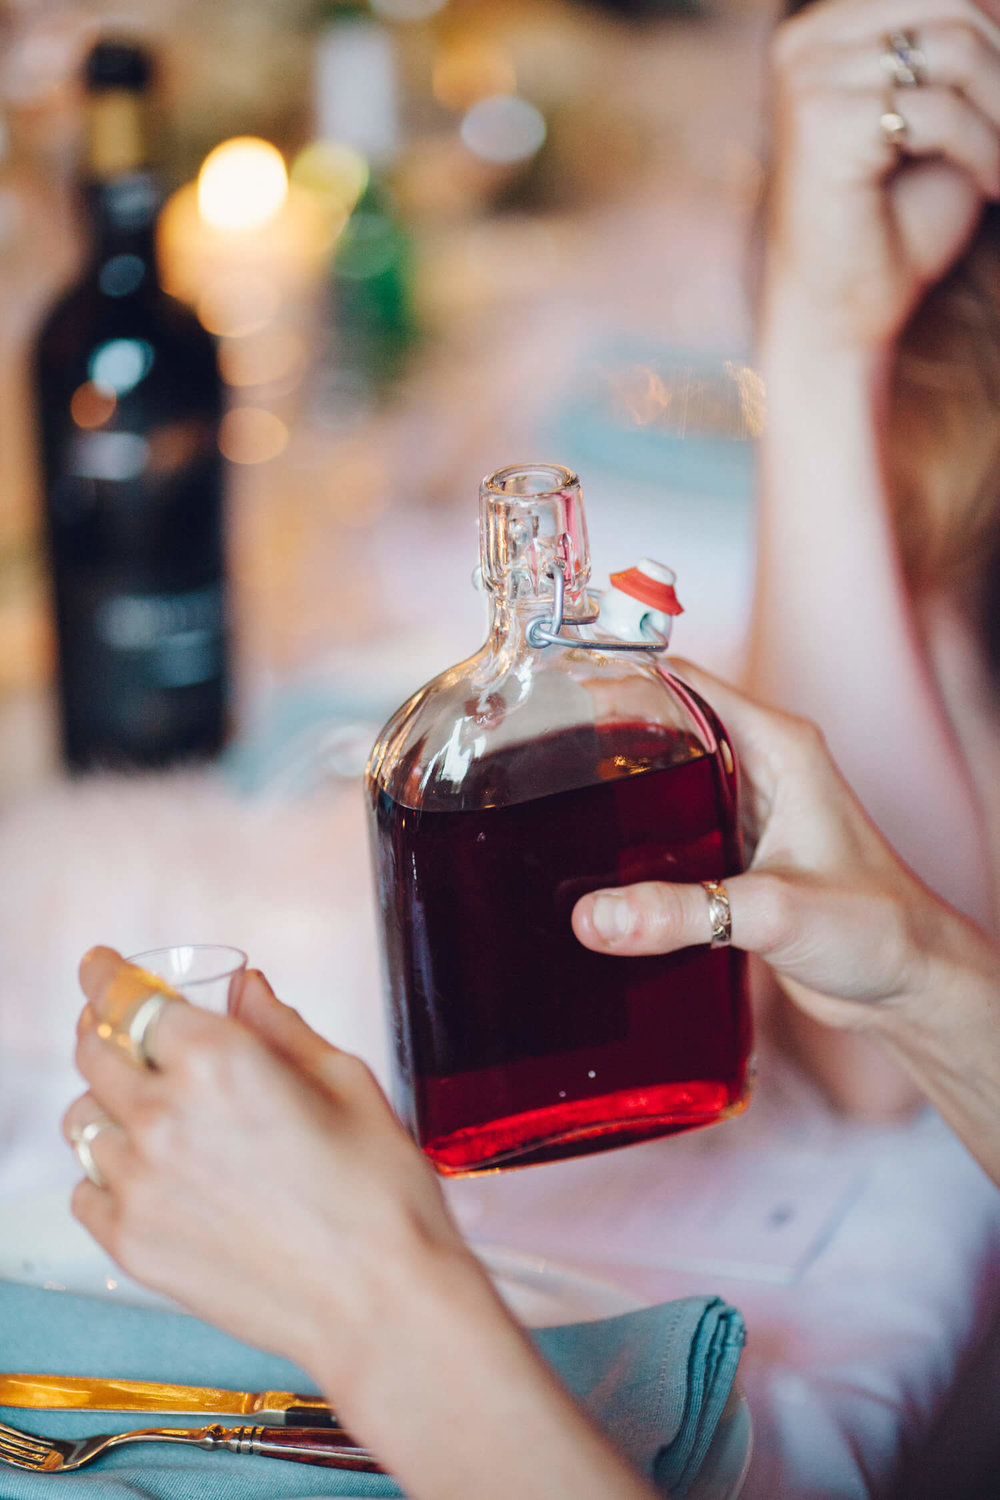 Homemade sloe gin, Quirky Venue, Non-traditional wedding planner, London Wedding coordination, Bespoke weddings, Brixton Wedding, Informal,